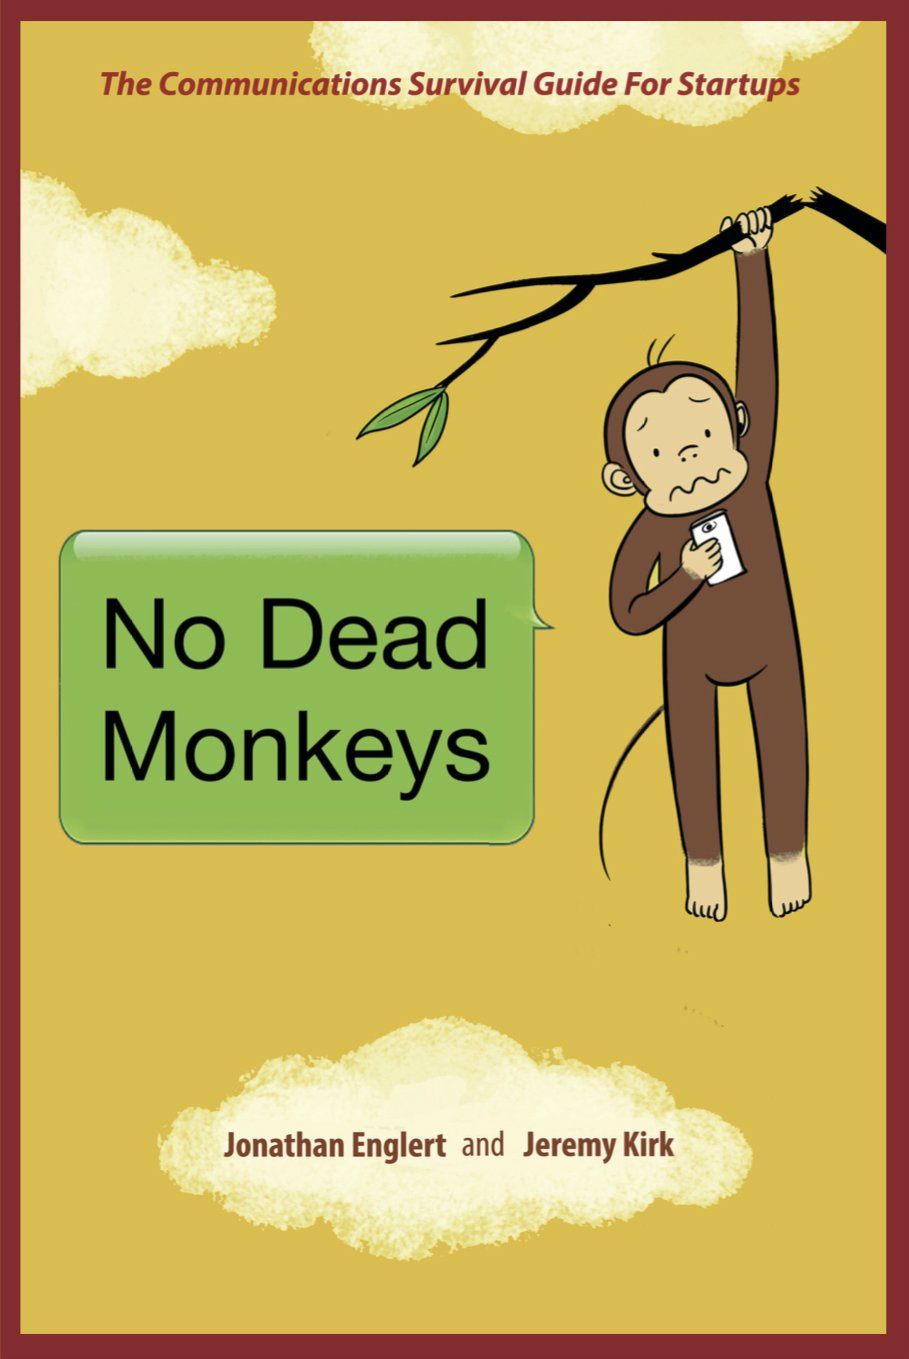 No Dead Monkeys